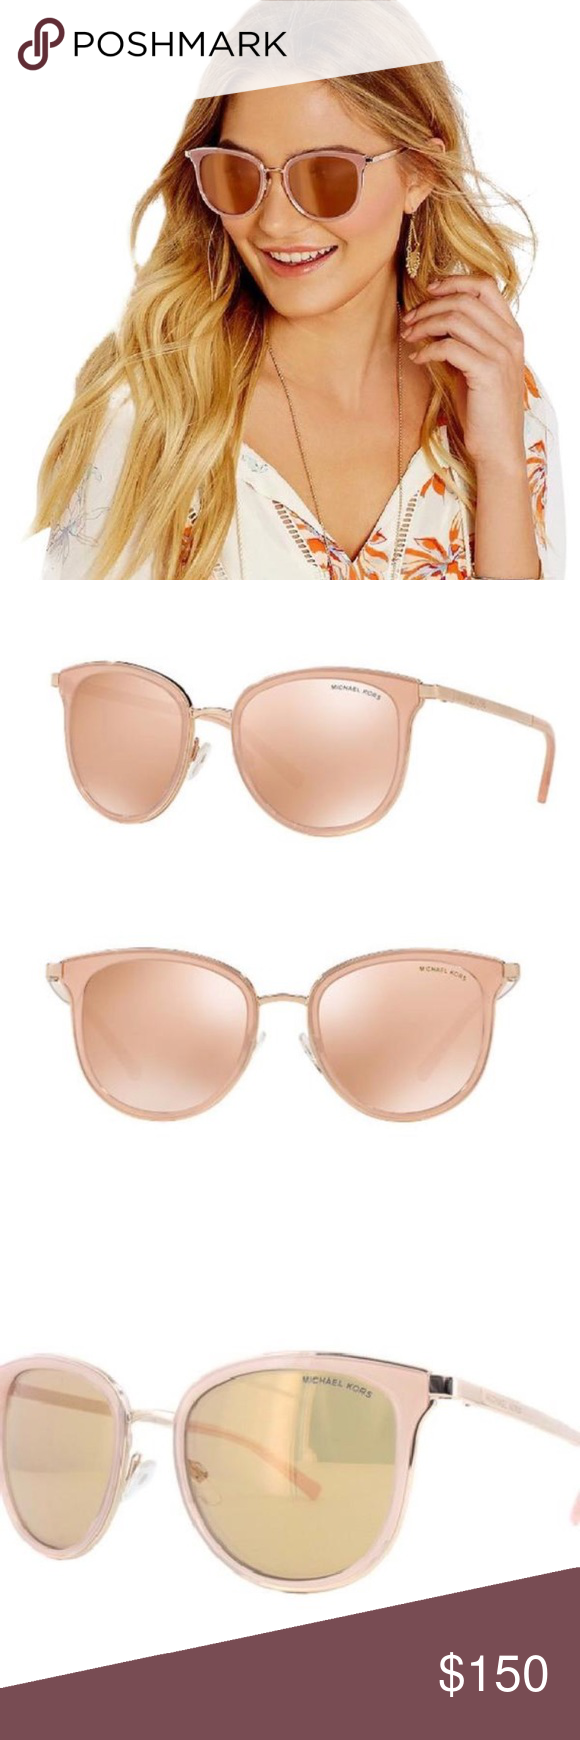 6f878be60b Michael Kors Pink   Rose Gold Adriana Sunglasses Brand new! Authentic Michael  Kors Adriana pink